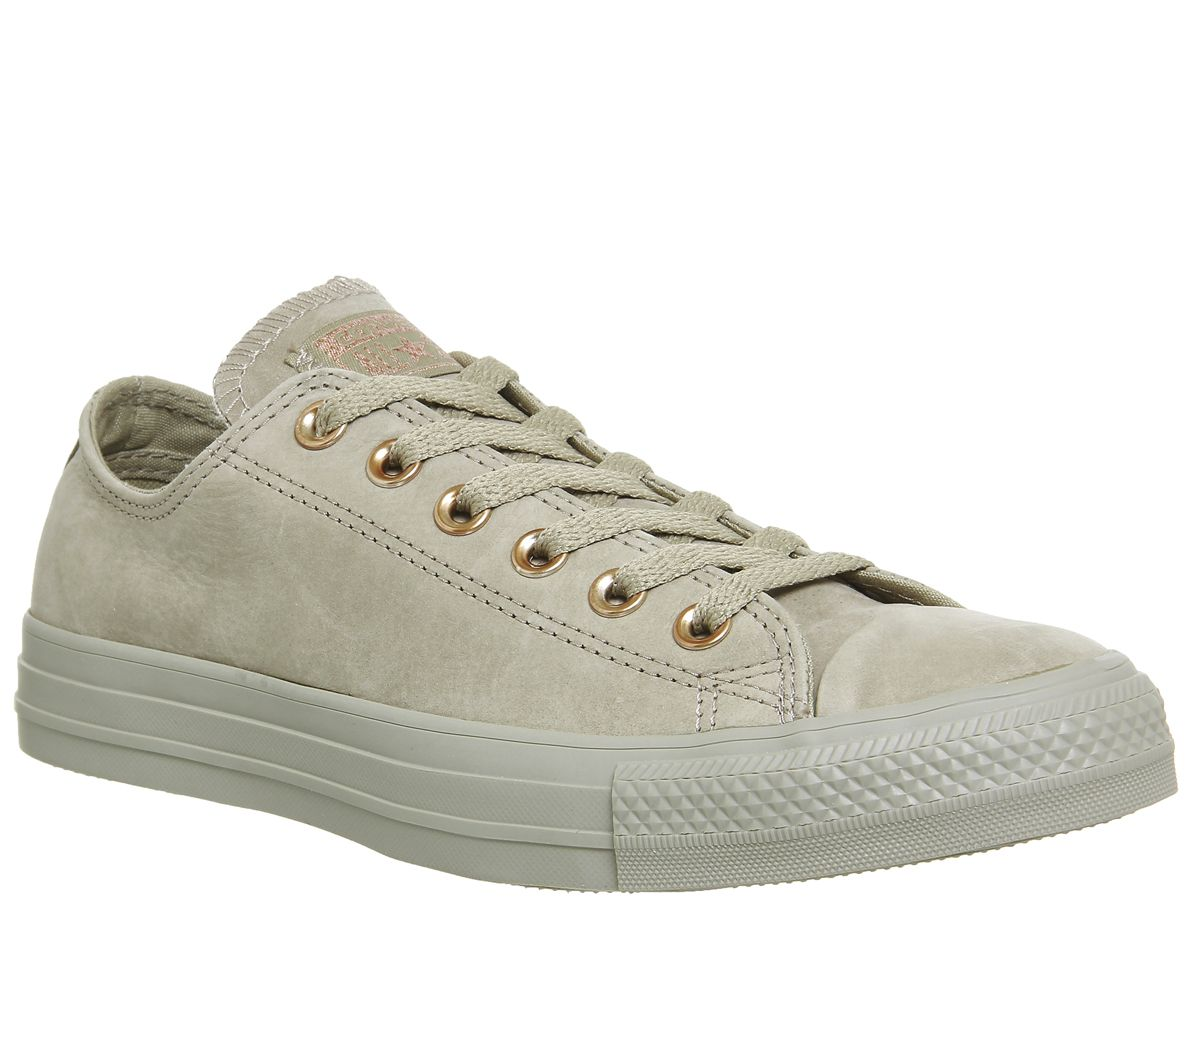 180fb25669f7 Converse All Star Low Leather Khaki Rose Gold Exclusive - Hers trainers